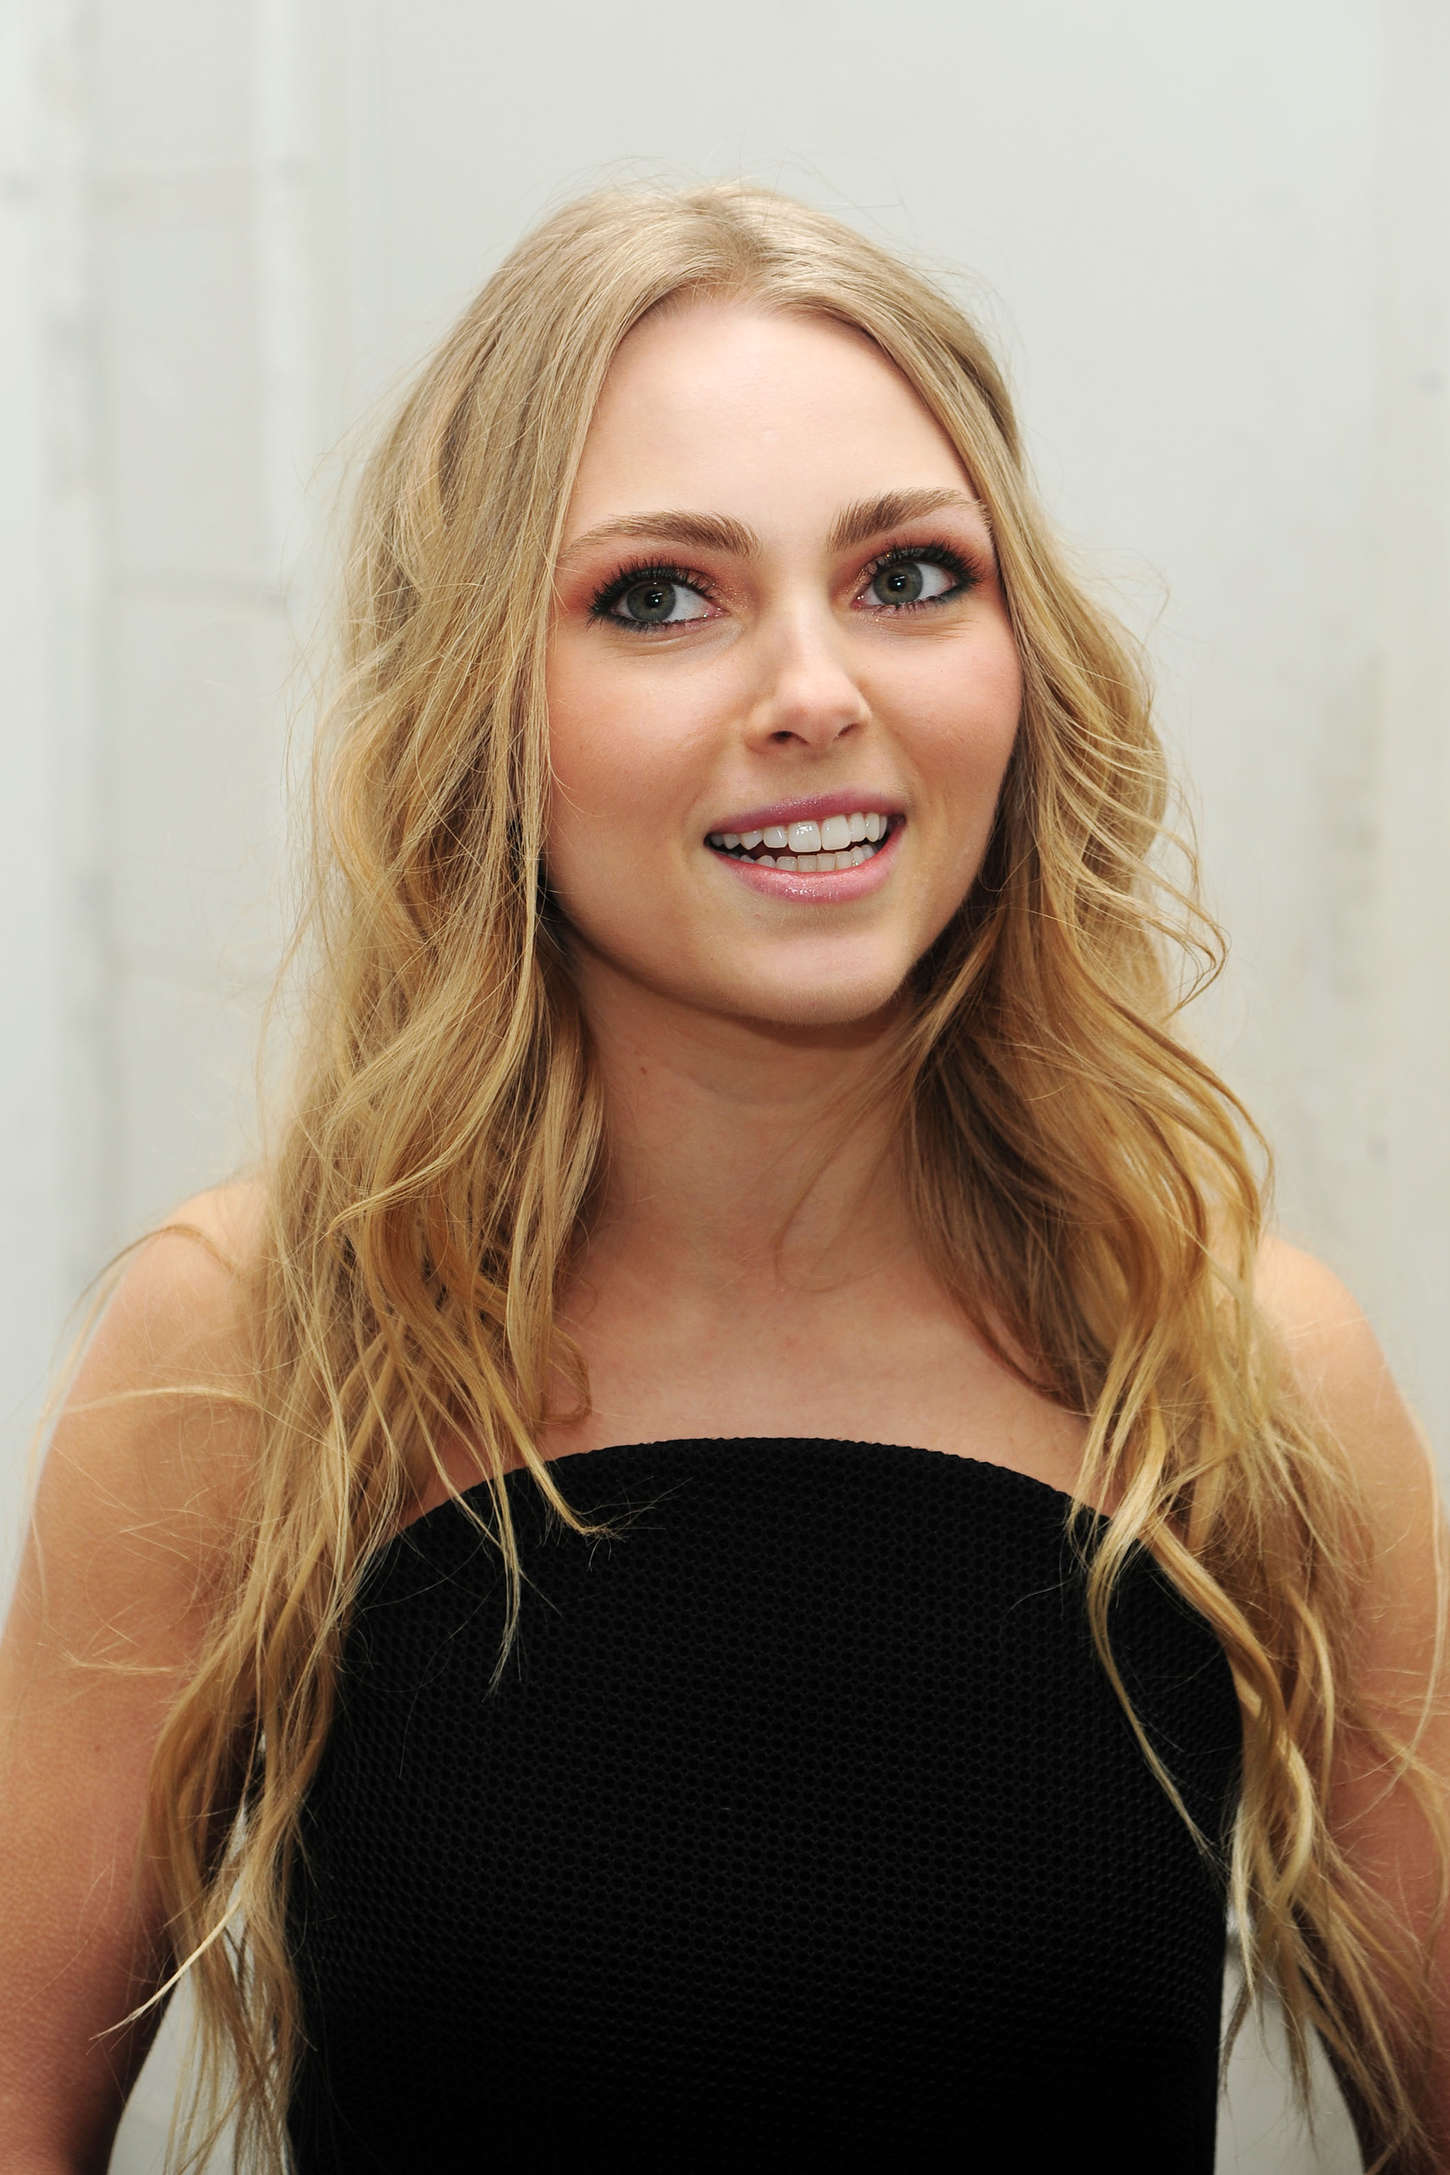 AnnaSophia Robb's physical appearance